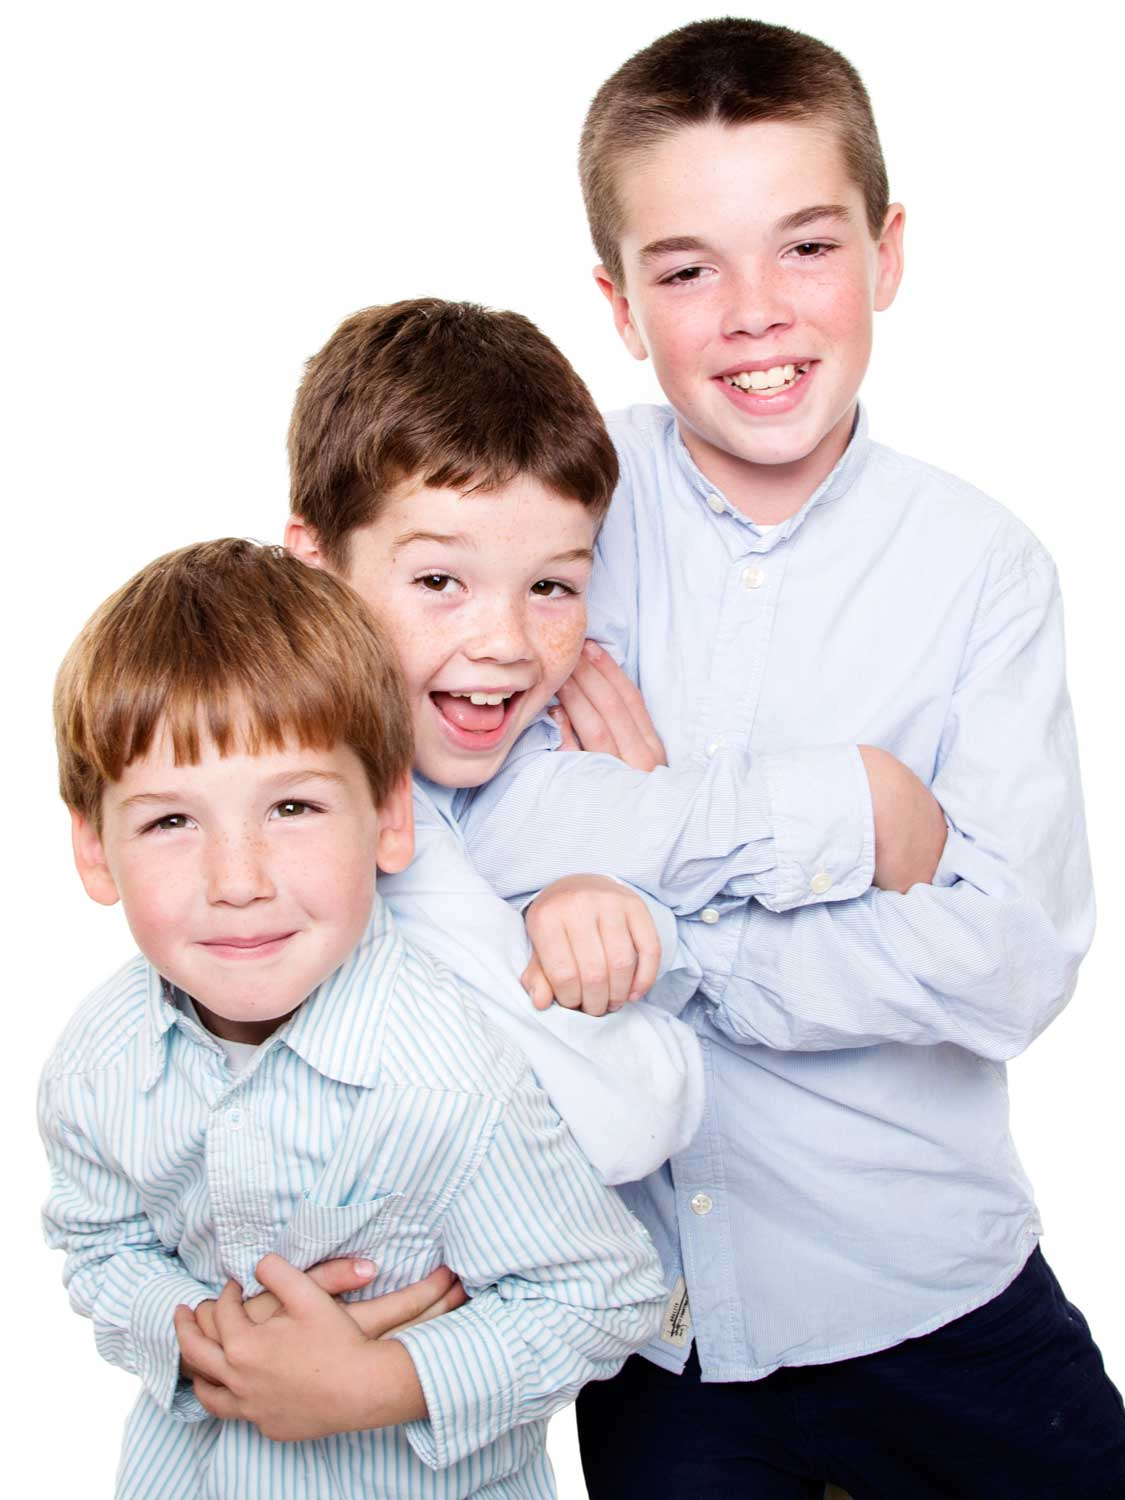 11-Home-Shoot-Boys-Brothers-Push-Colour-Philip-Murray-Photography-Dublin